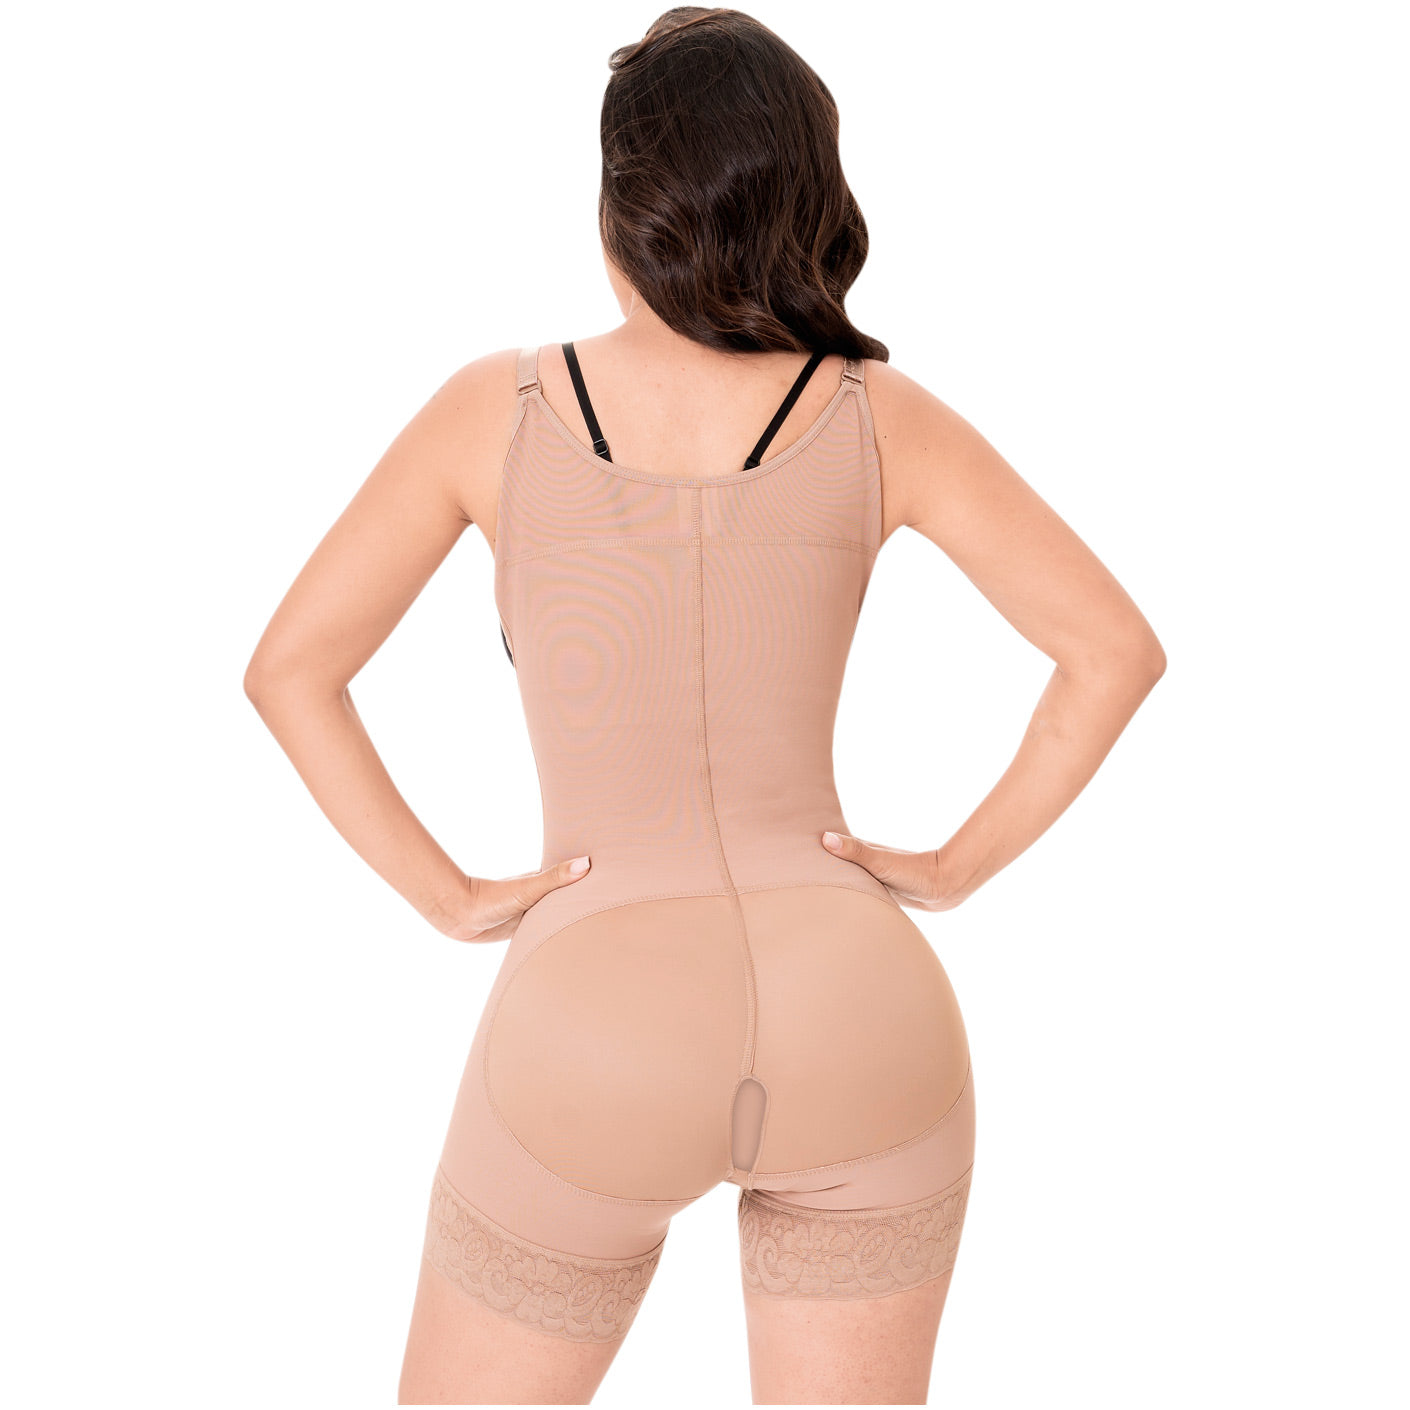 Sonryse 046 Colombian Body Shaper After Surge